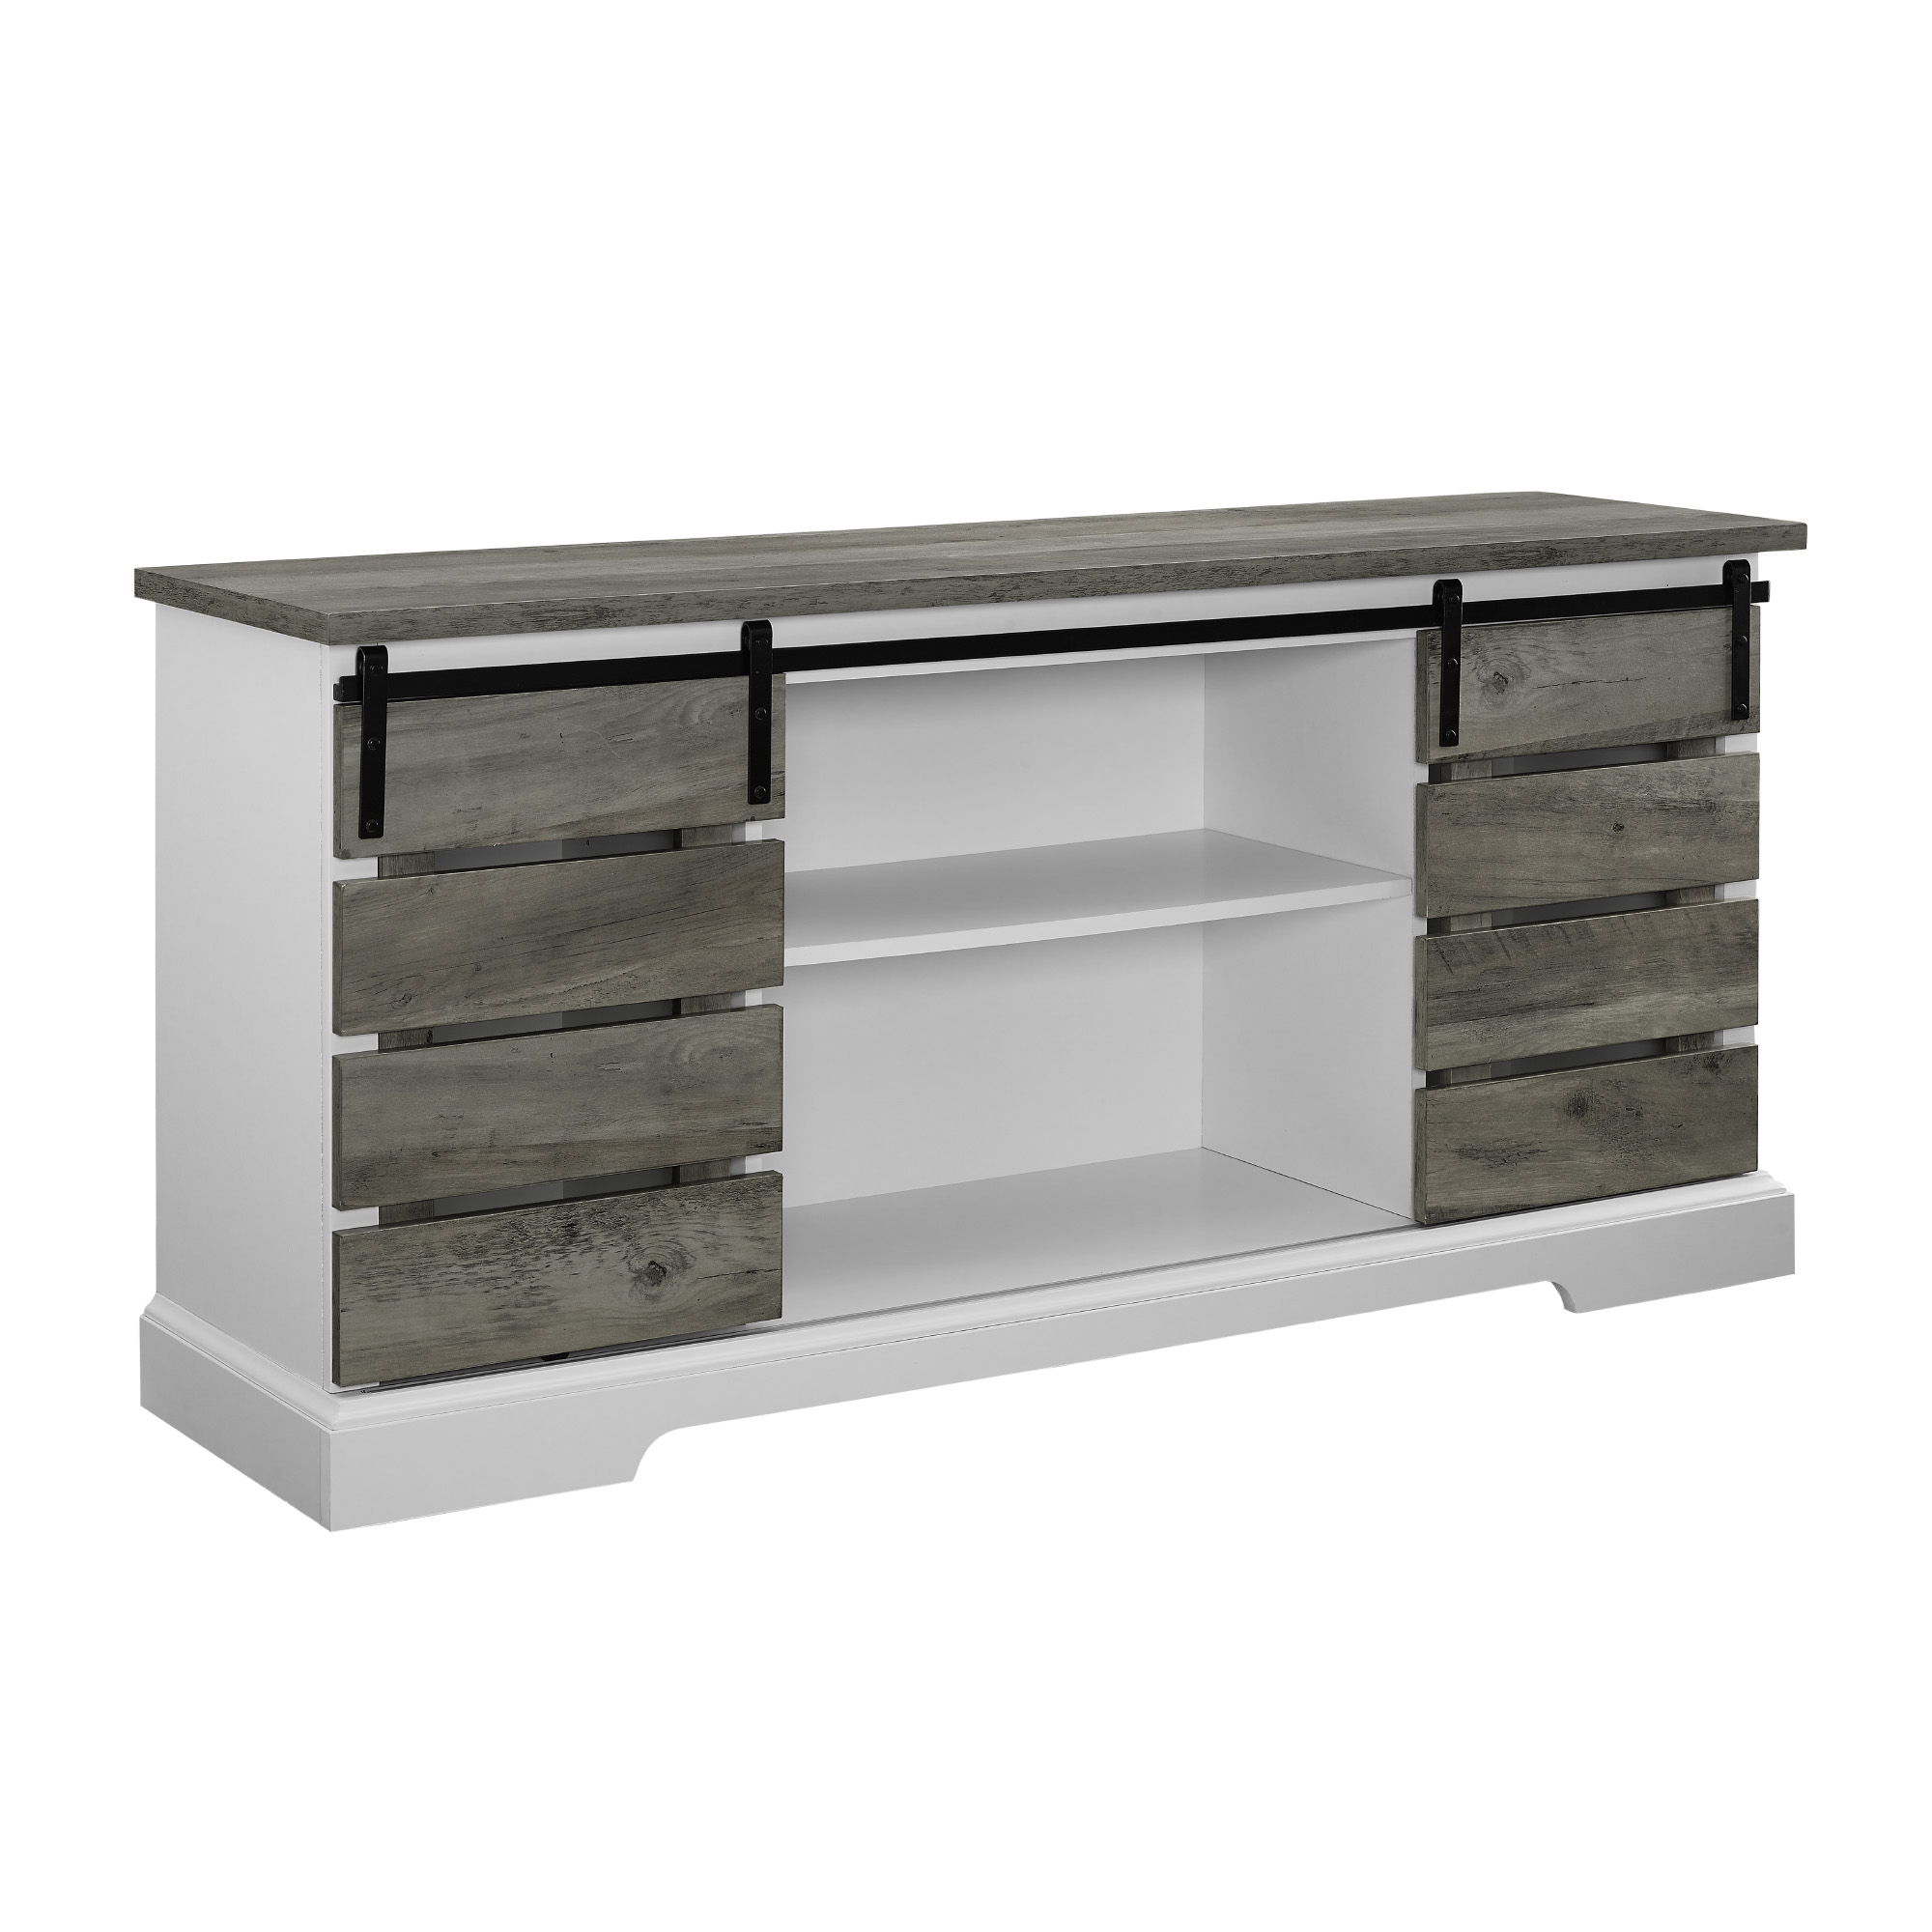 Most Recent Woven Paths Sliding Slat Door Tv Stand For Tv's Up To 64 Intended For Woven Paths Barn Door Tv Stands In Multiple Finishes (View 1 of 10)